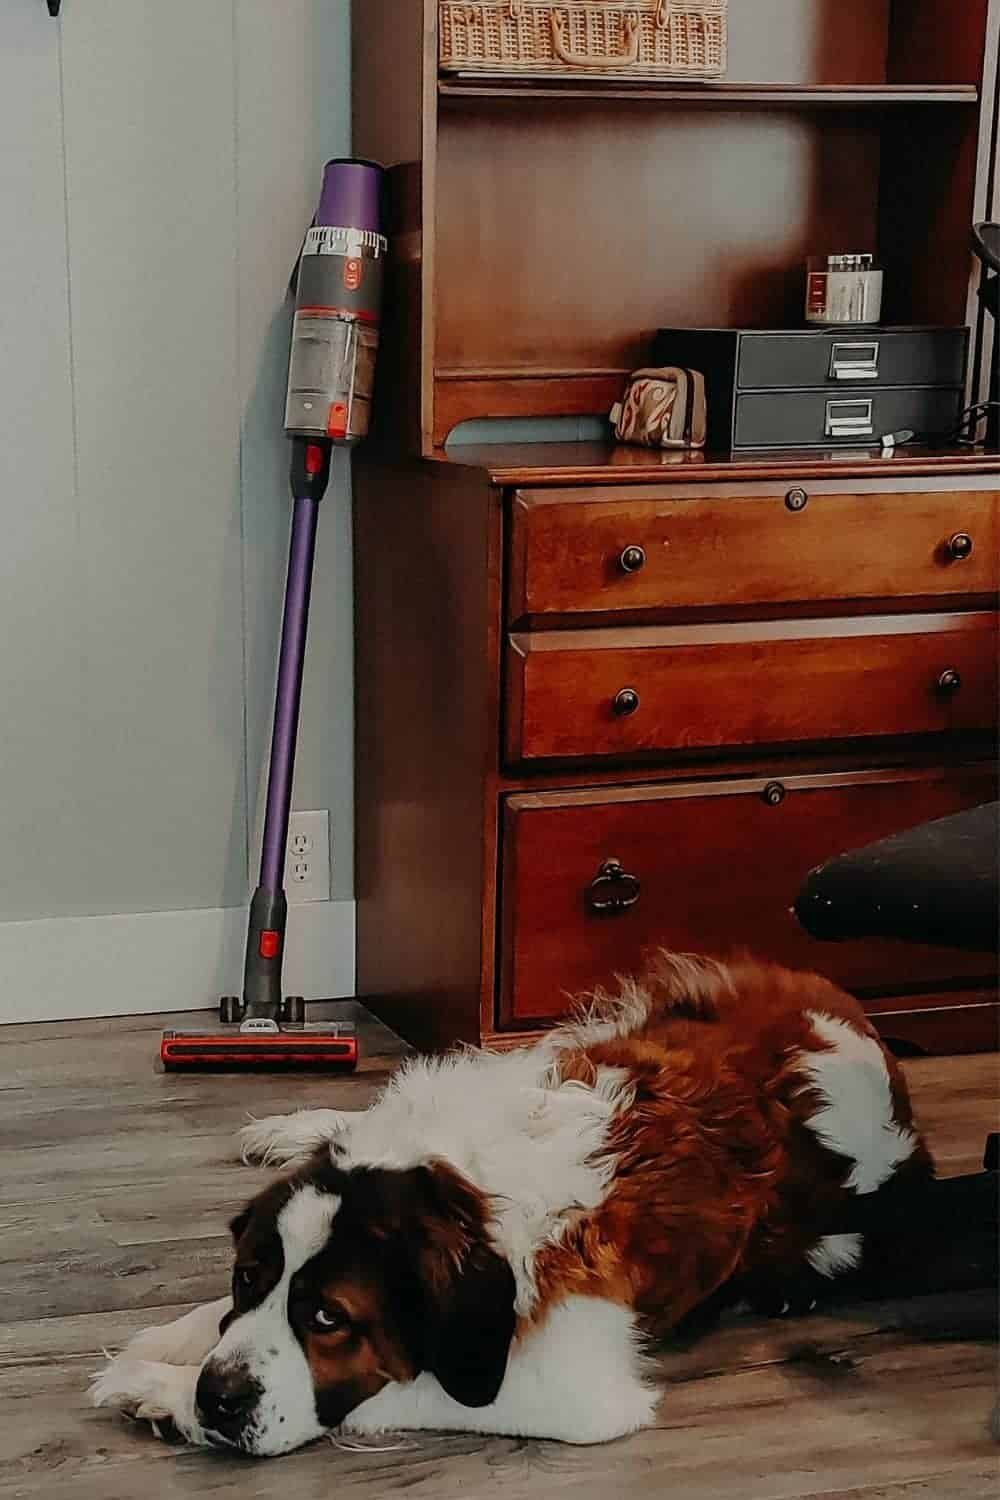 Best Budget-Friendly Vacuum Cleaner For Pet Hair